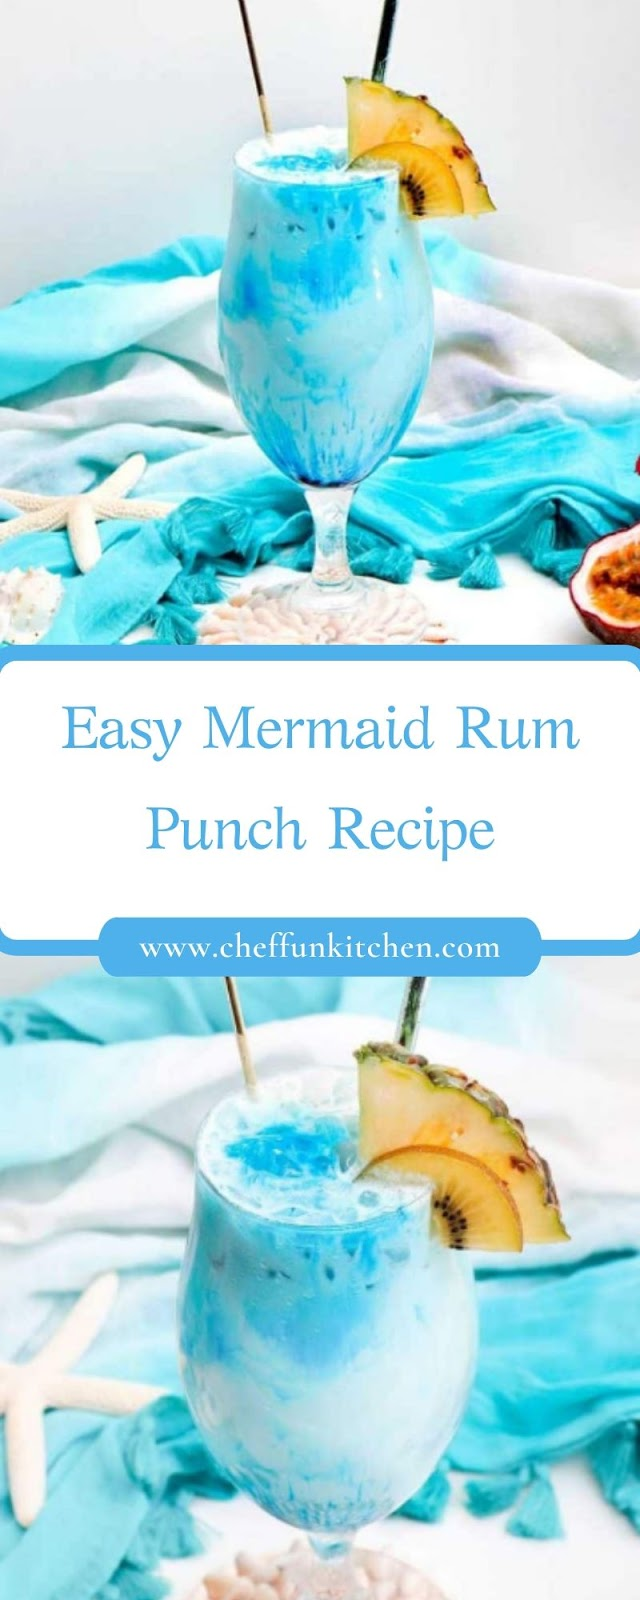 Easy Mermaid Rum Punch Recipe